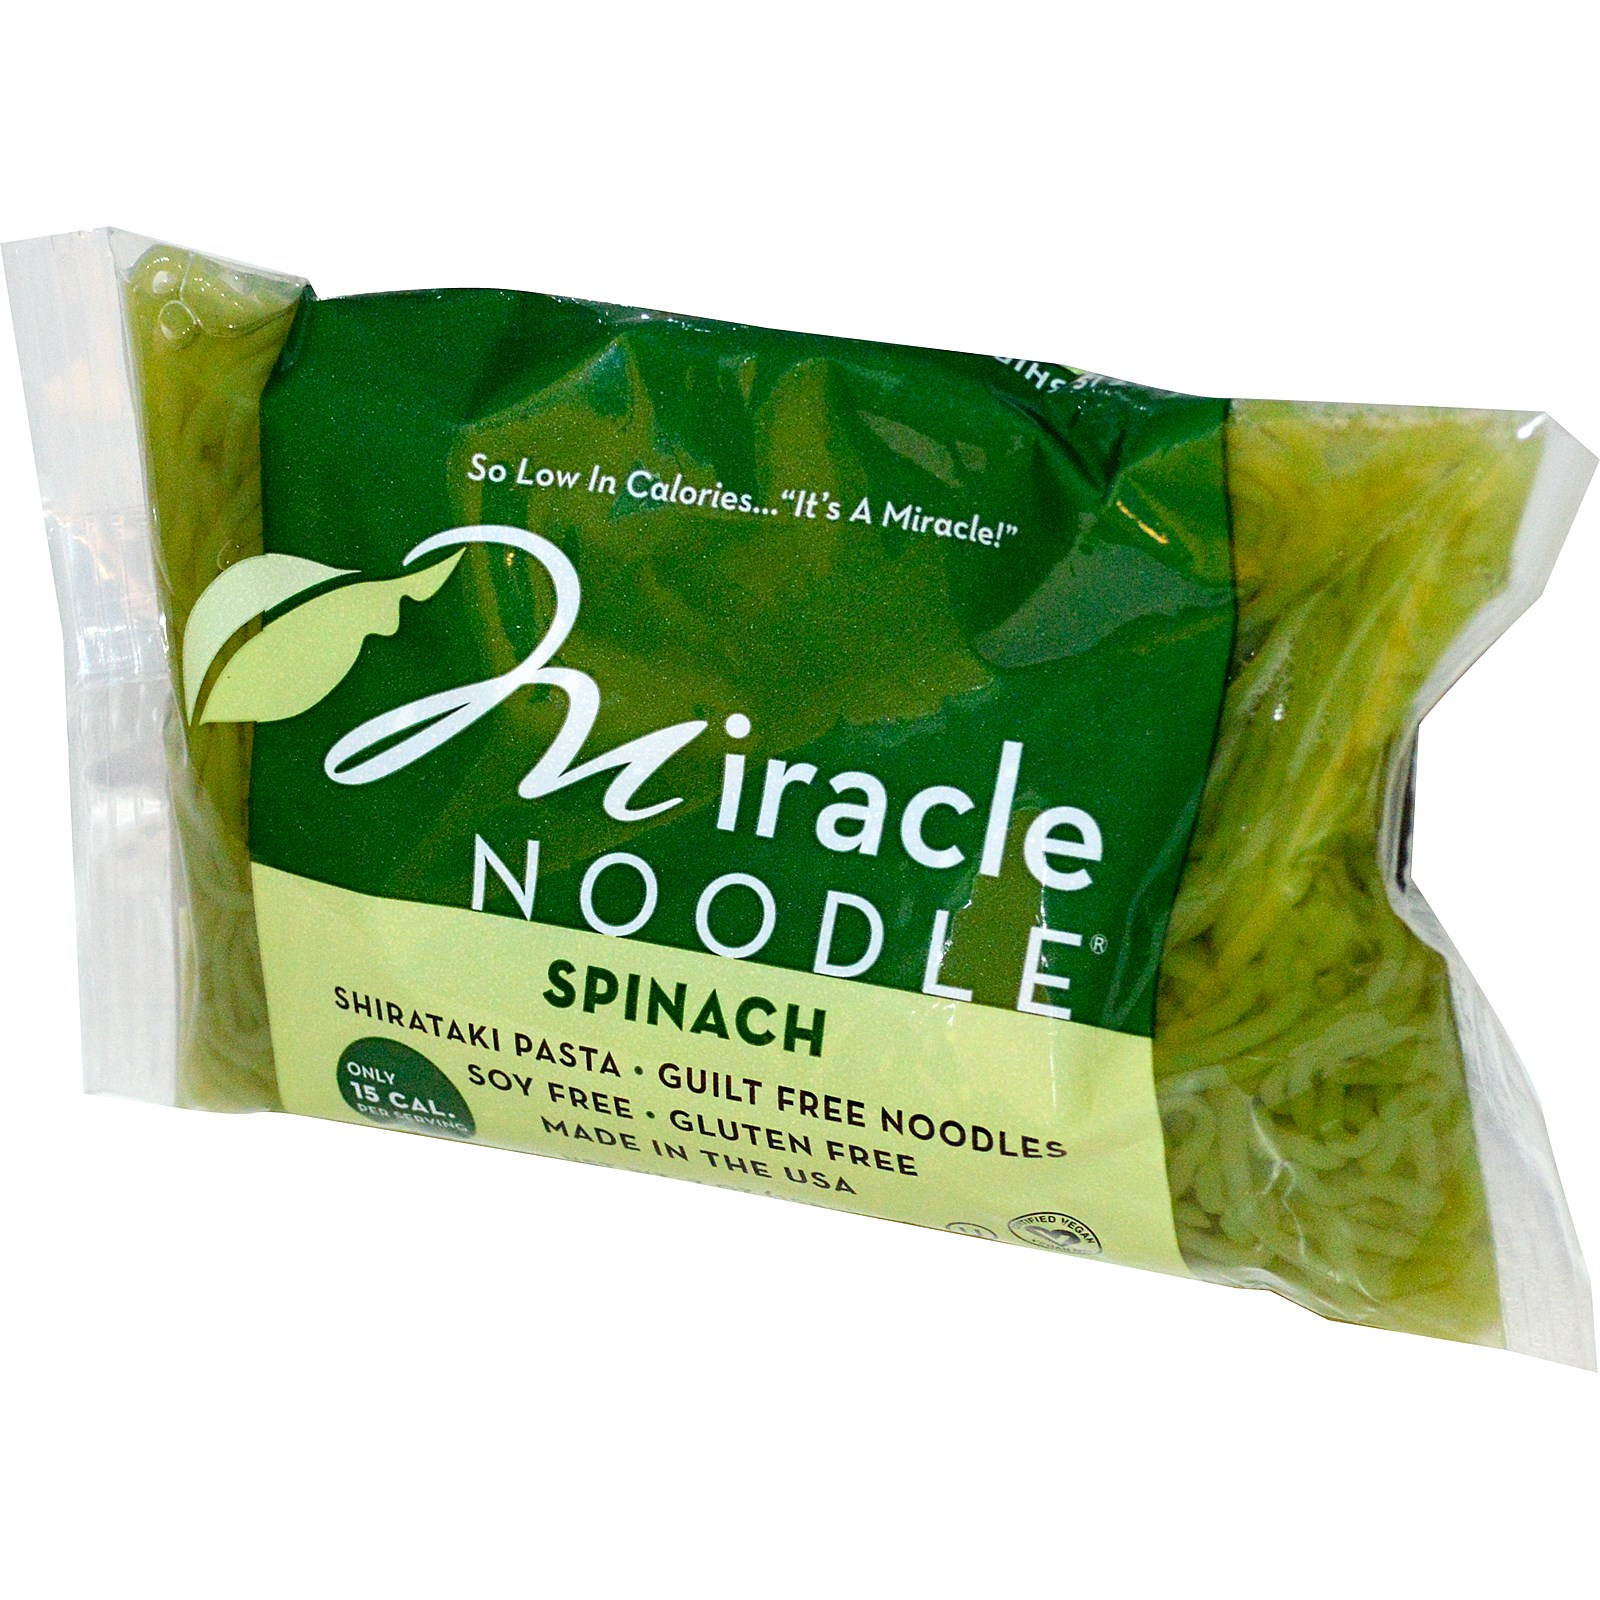 Miracle Noodle, Spinach, Shirataki Pasta, 7 oz (pack of 12)